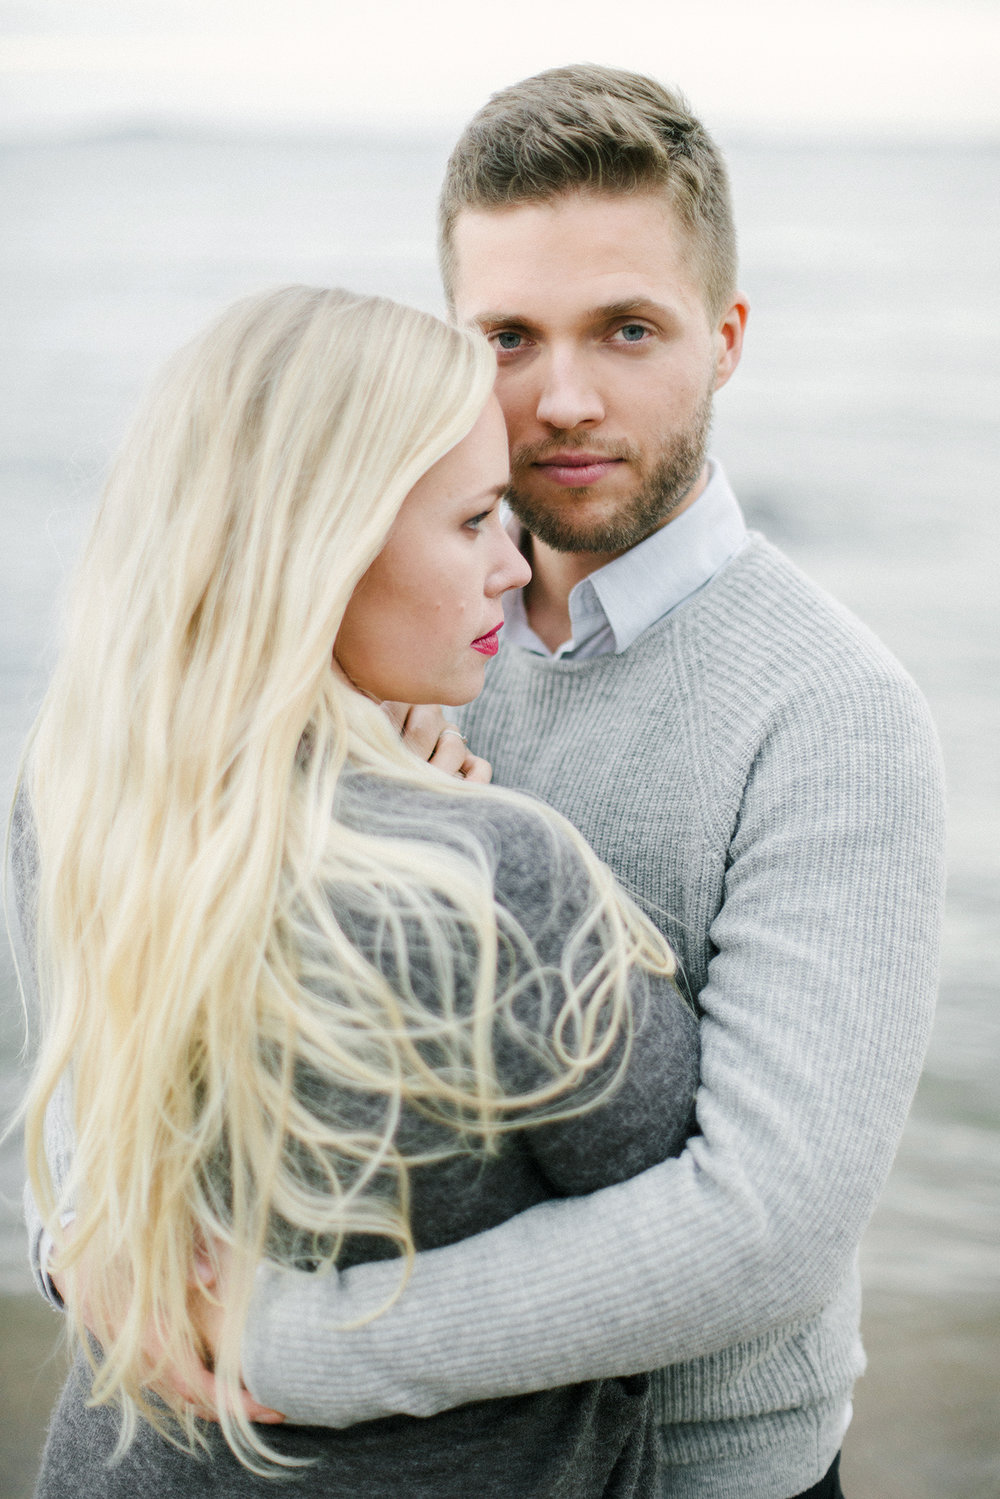 Sari & Mikko - Beach Engagement Couple Shoot in Hanko kihlakuvaus parikuvaus - Susanna Nordvall - Hey Look (19).jpg